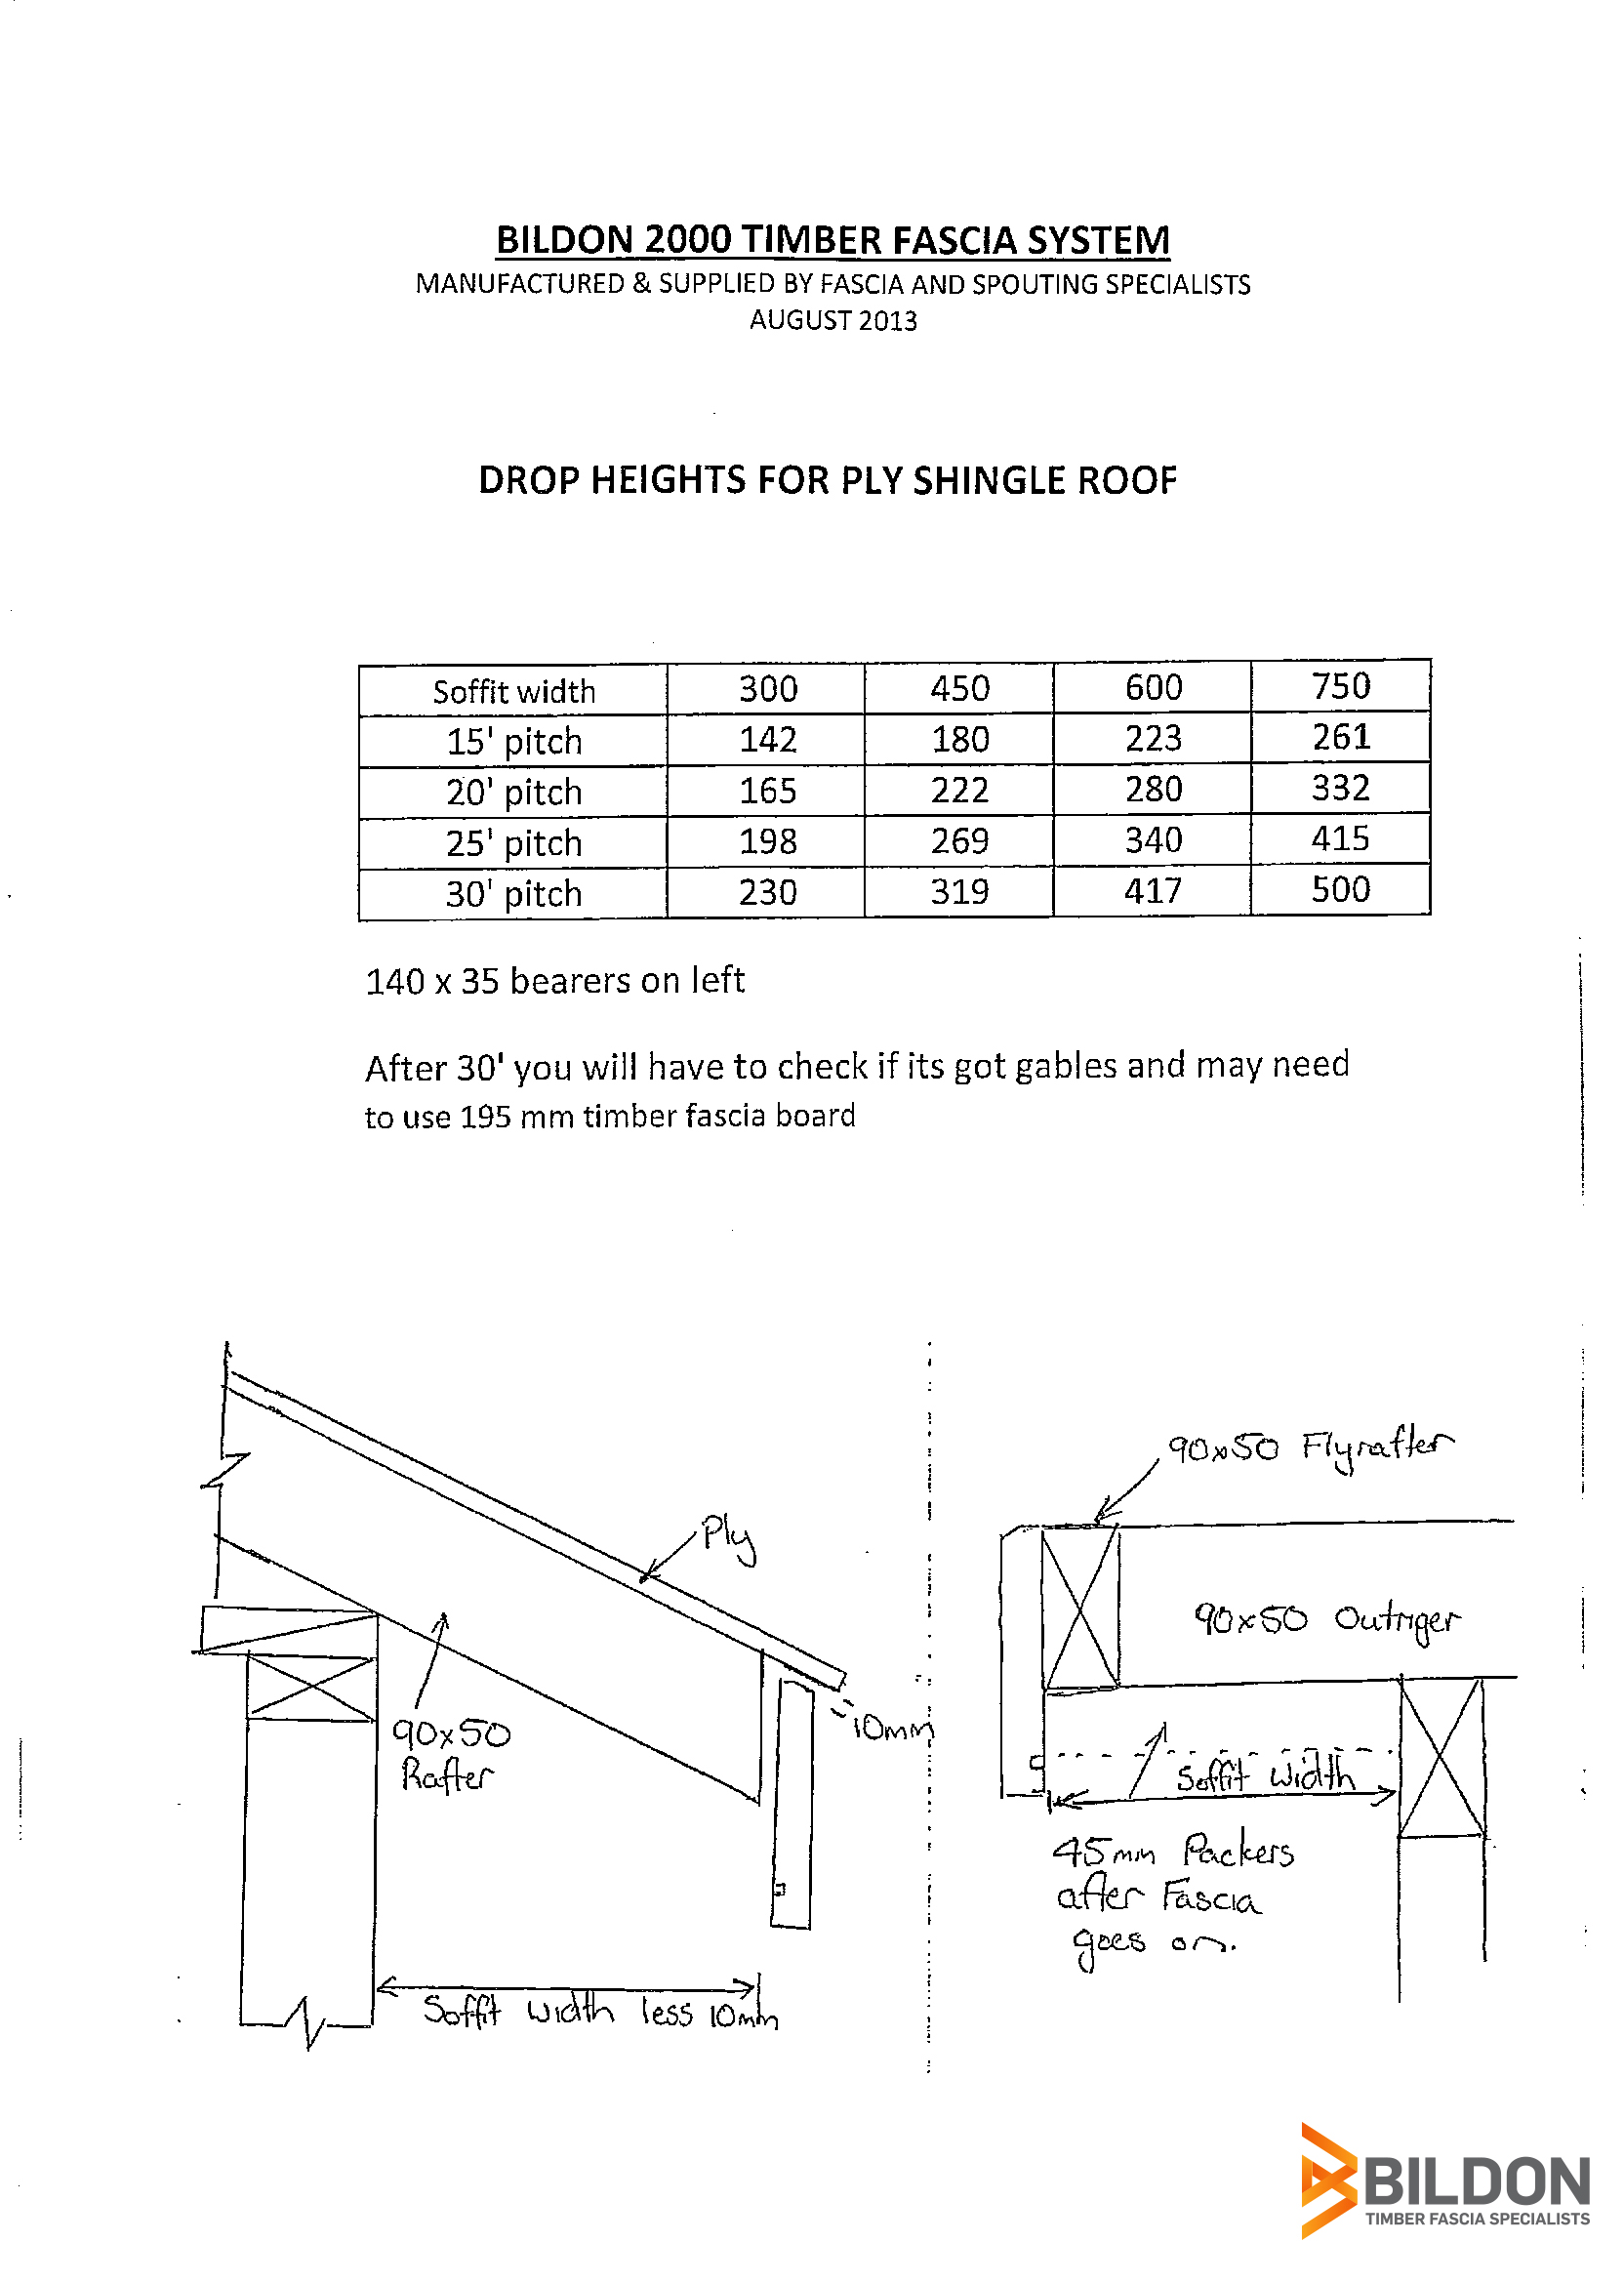 Drop Heights for Ply Shingle Roof.jpg